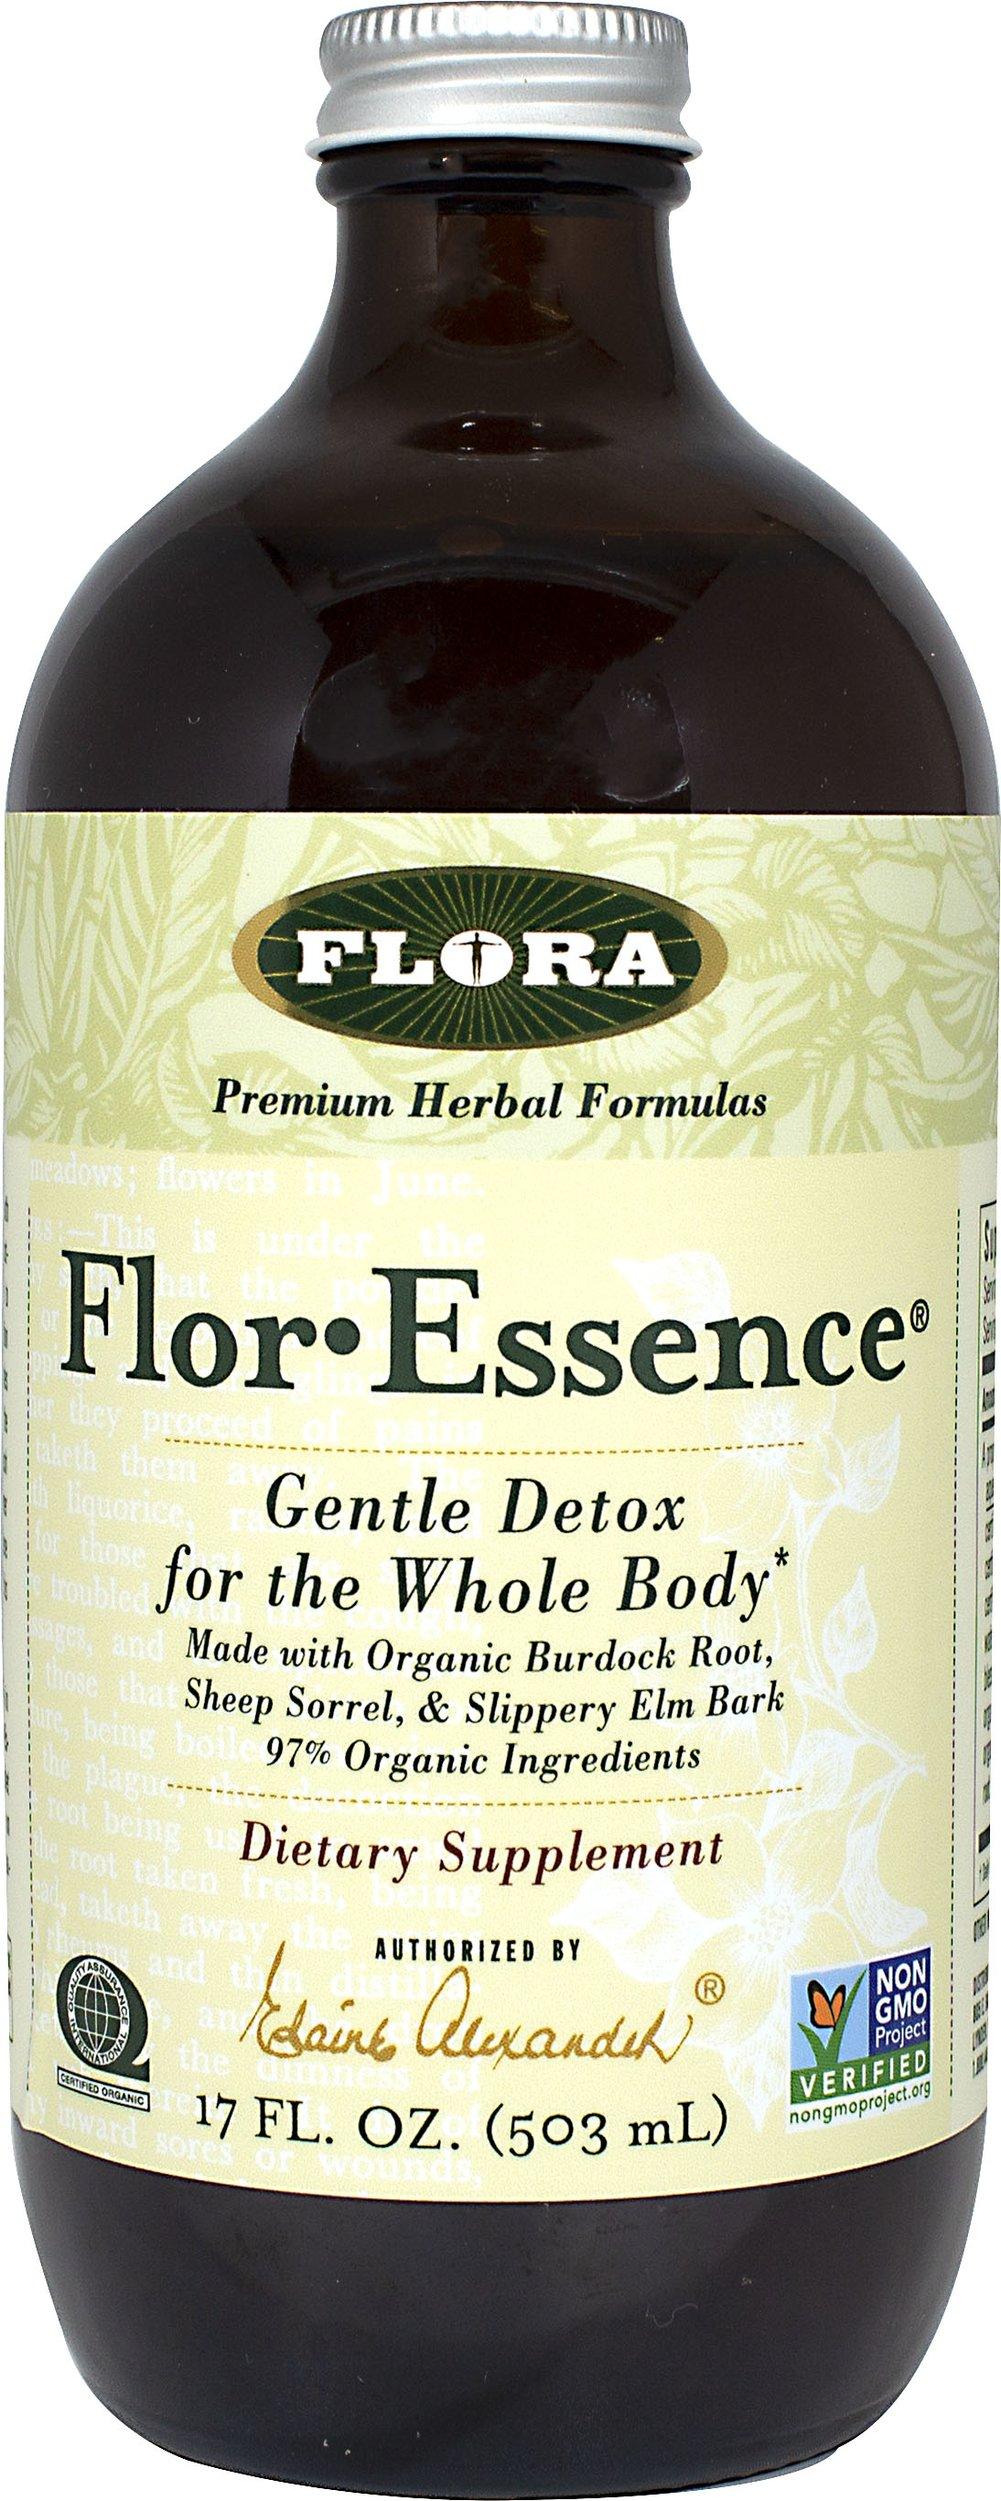 Flor-Essence Liquid Thumbnail Alternate Bottle View